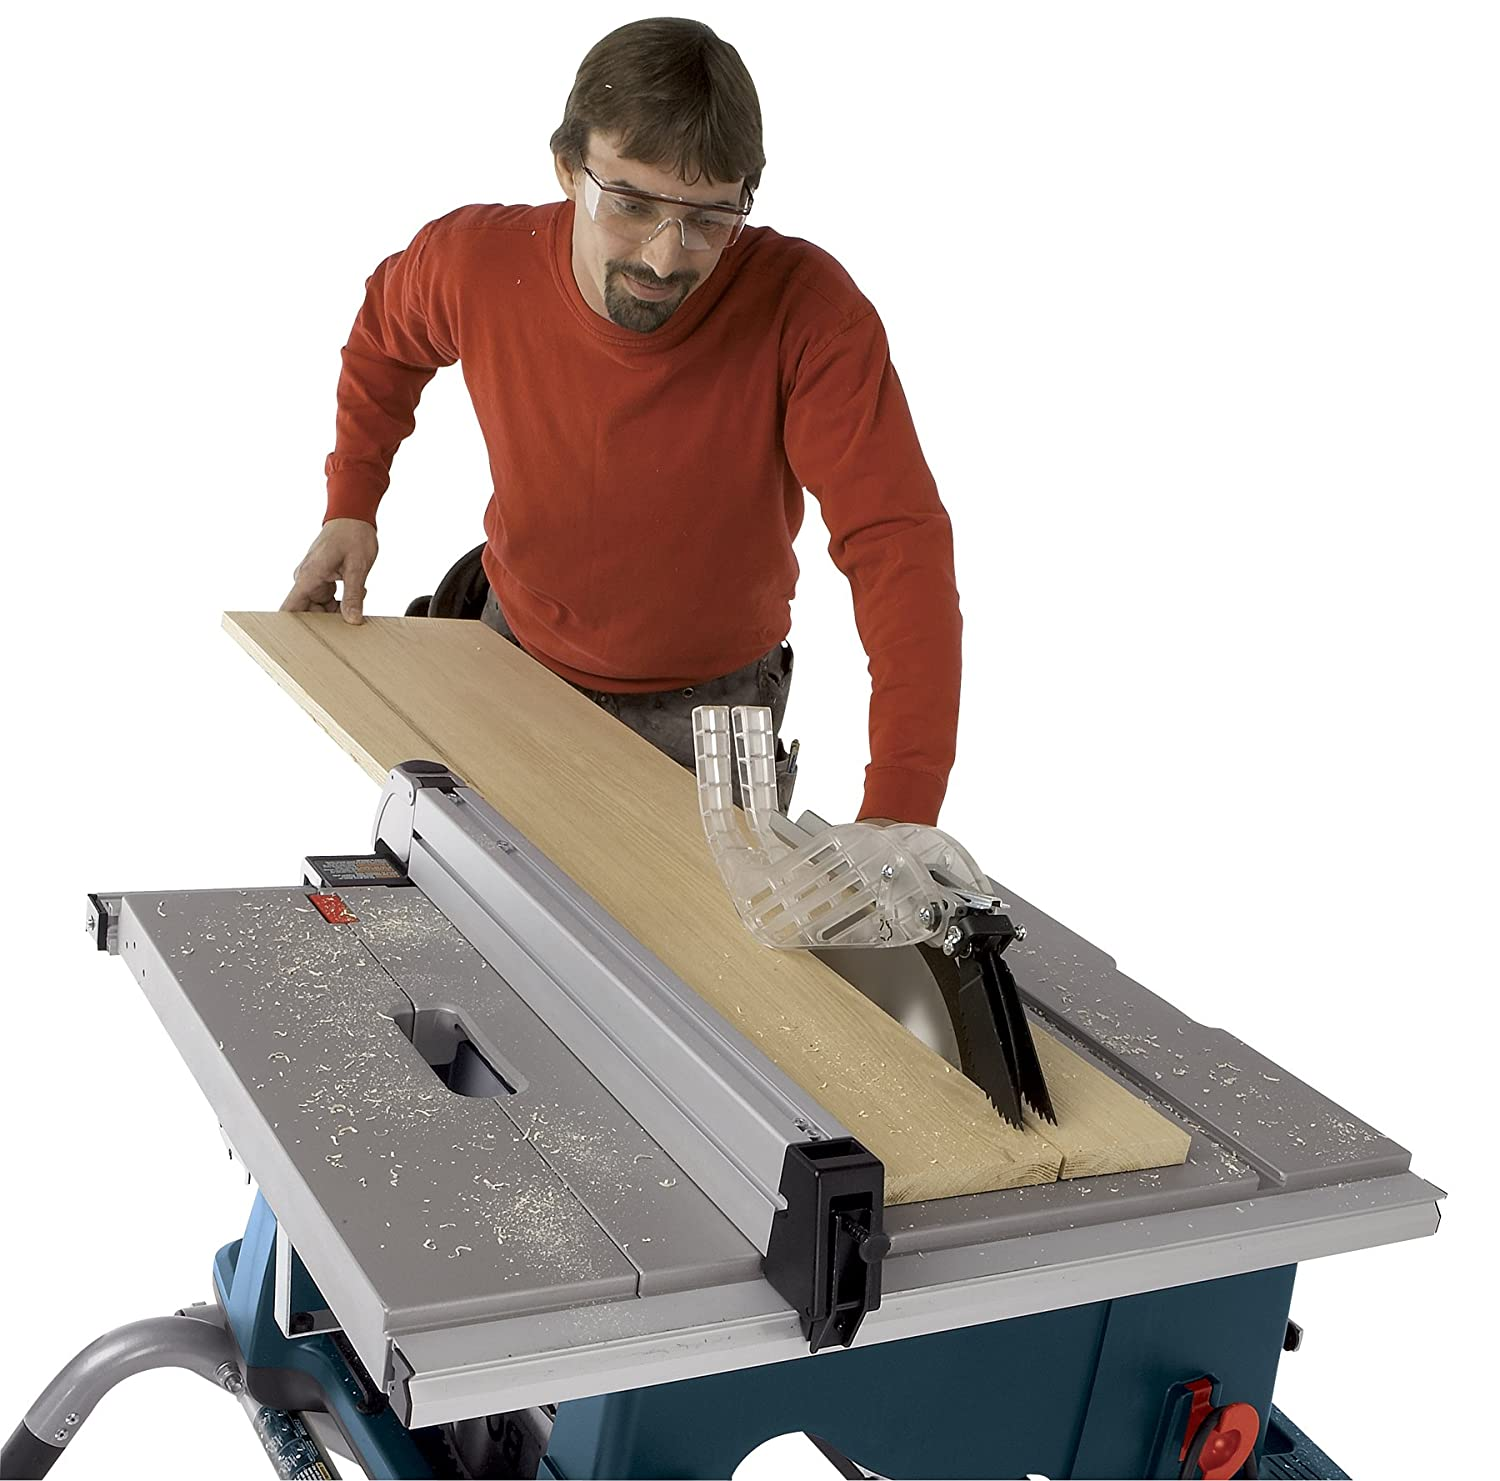 Best Table Saw Under 1000 Mar 2018 Buyer 39 S Guide And Reviews